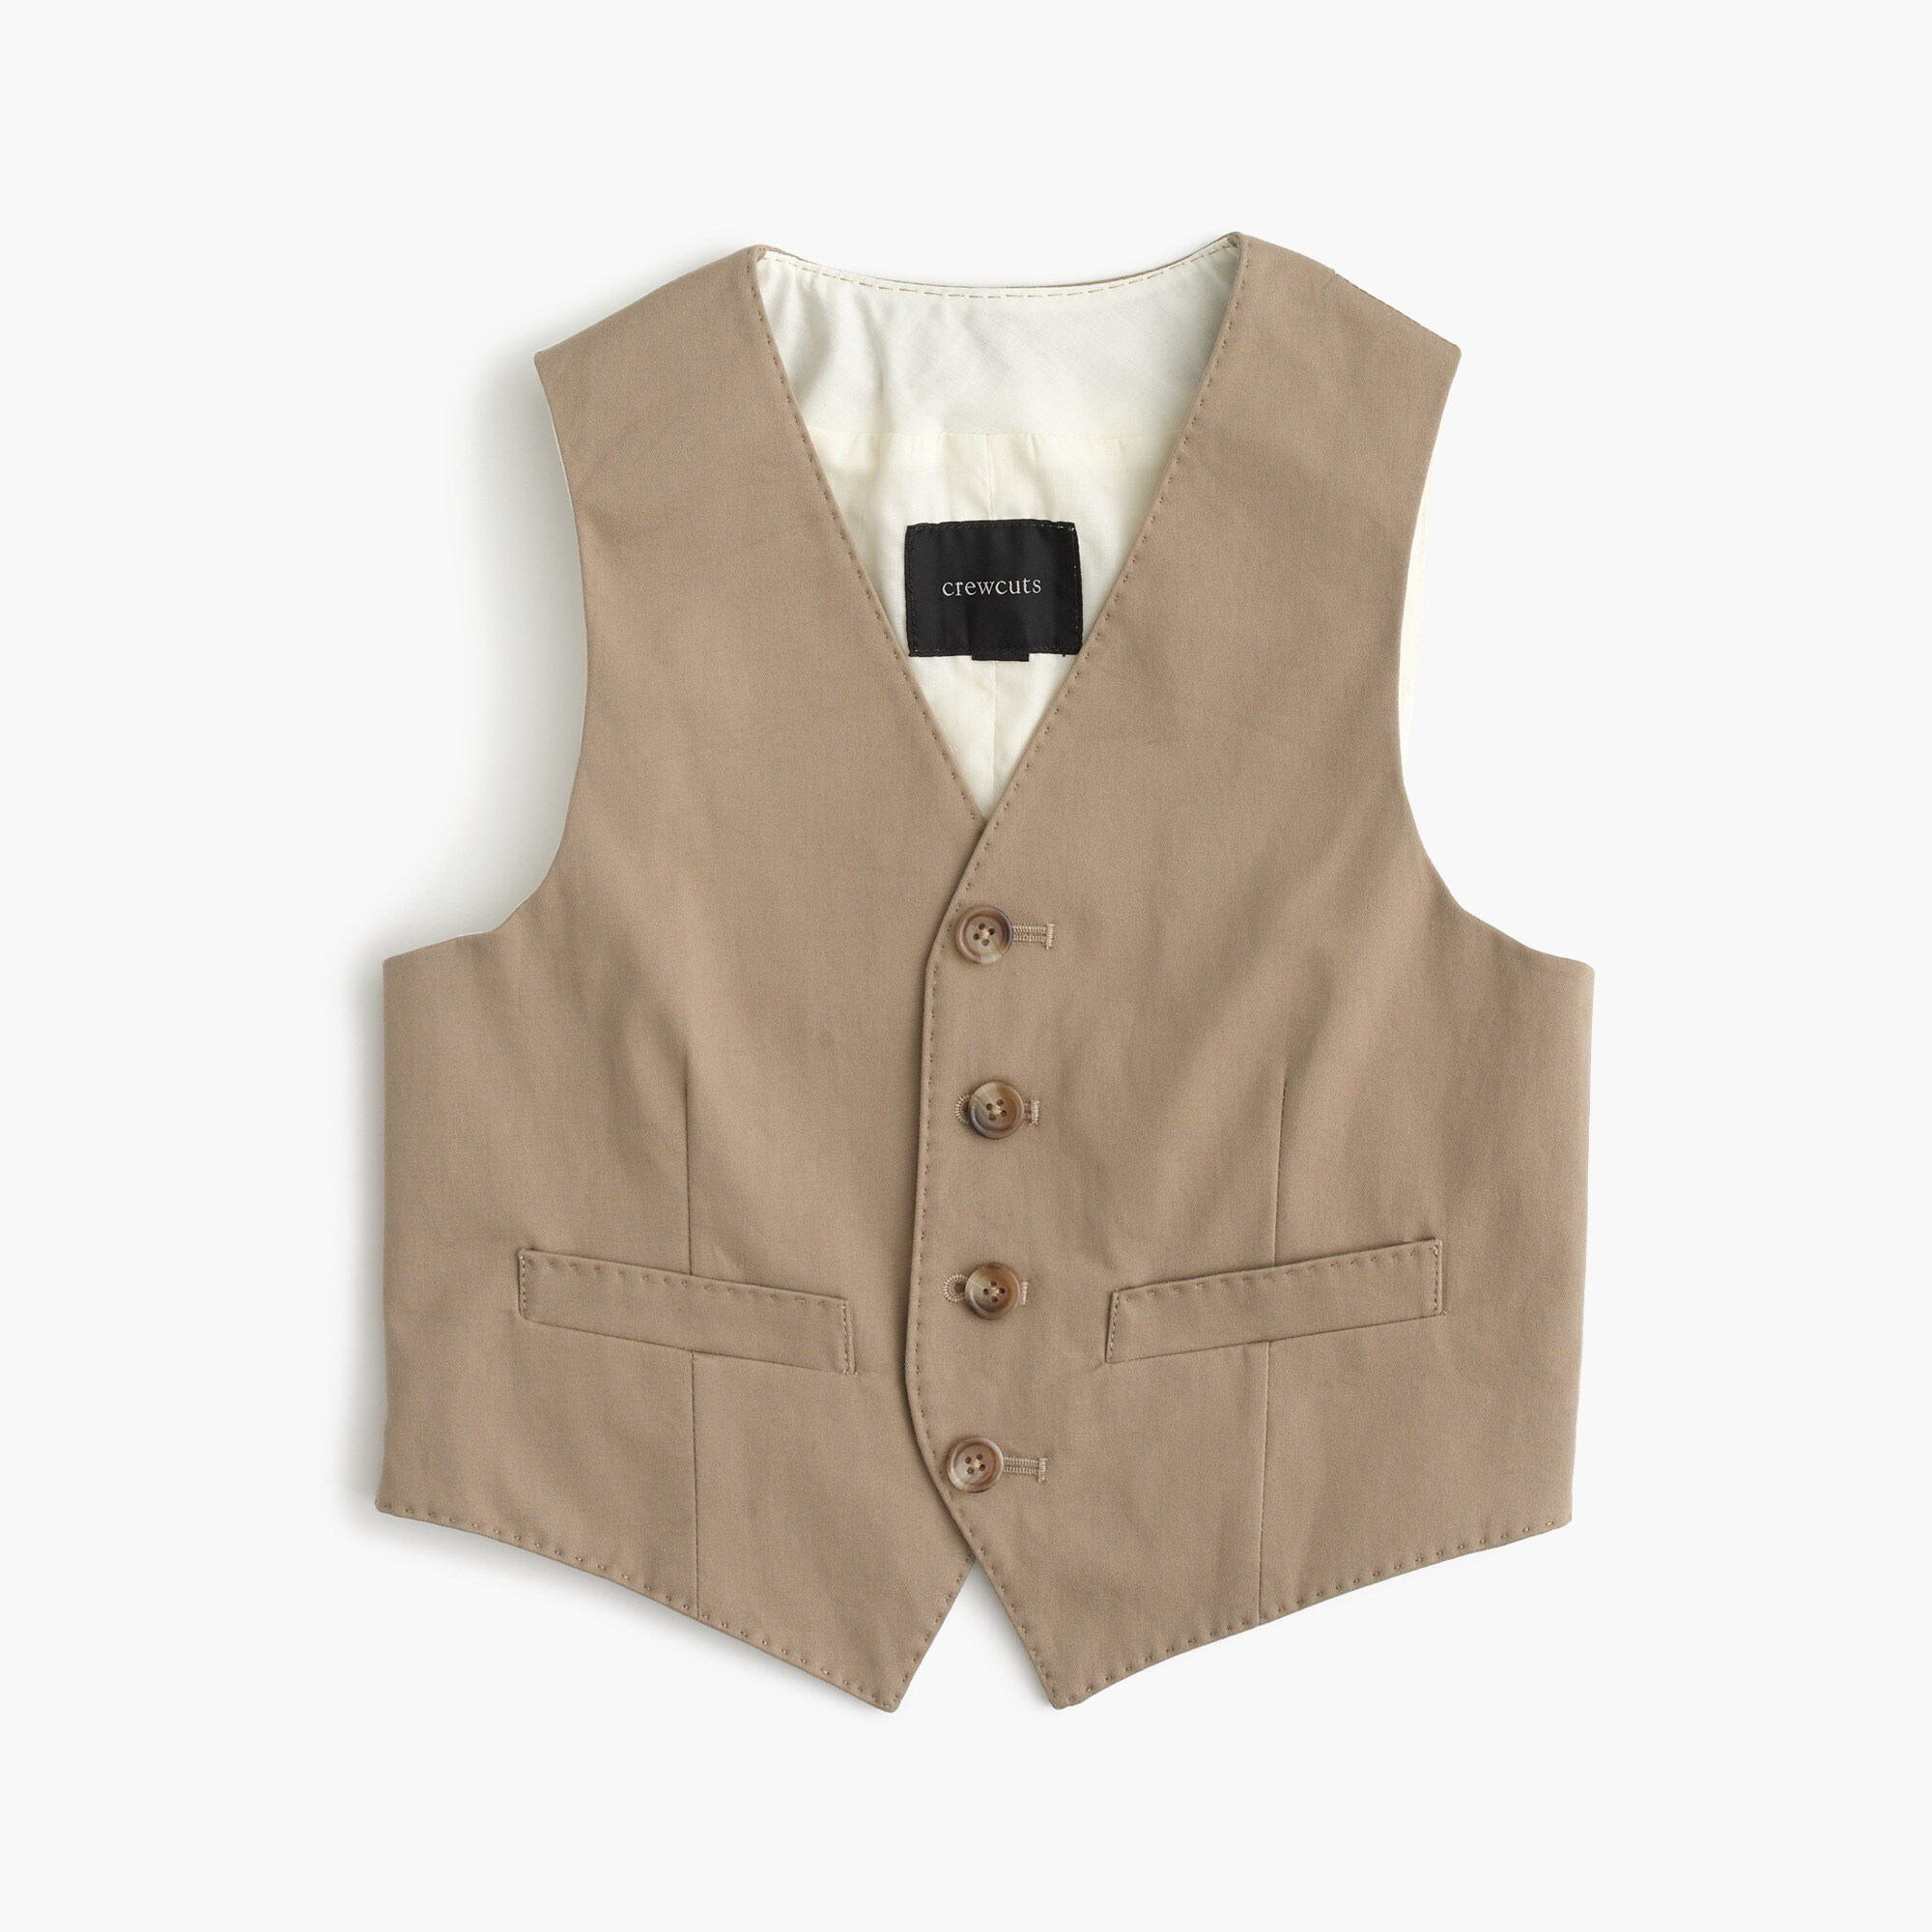 boys Boys' Ludlow suit vest in Italian stretch chino